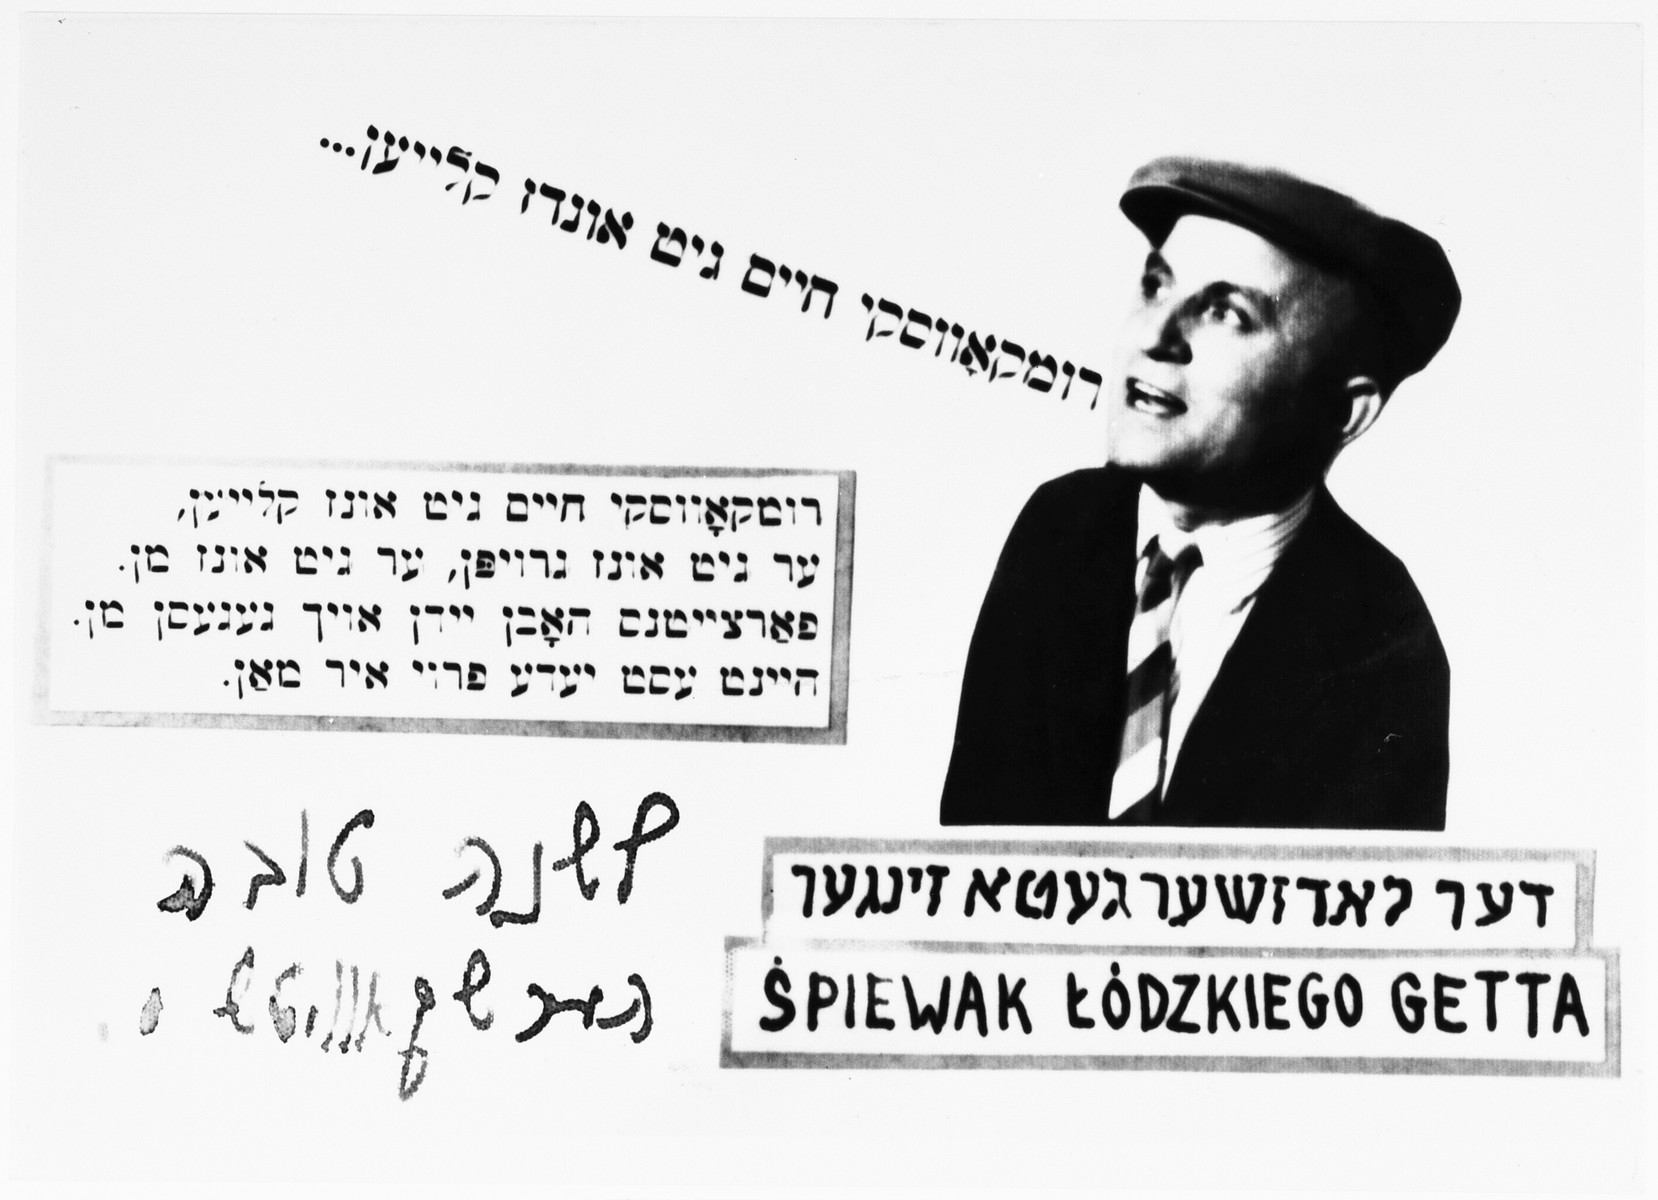 Jewish New Year's card from Jankiel Herszkowicz, showing the performer singing his famous parody about Mordechai Chaim Rumkowski, chairman of the Lodz ghetto Jewish council.